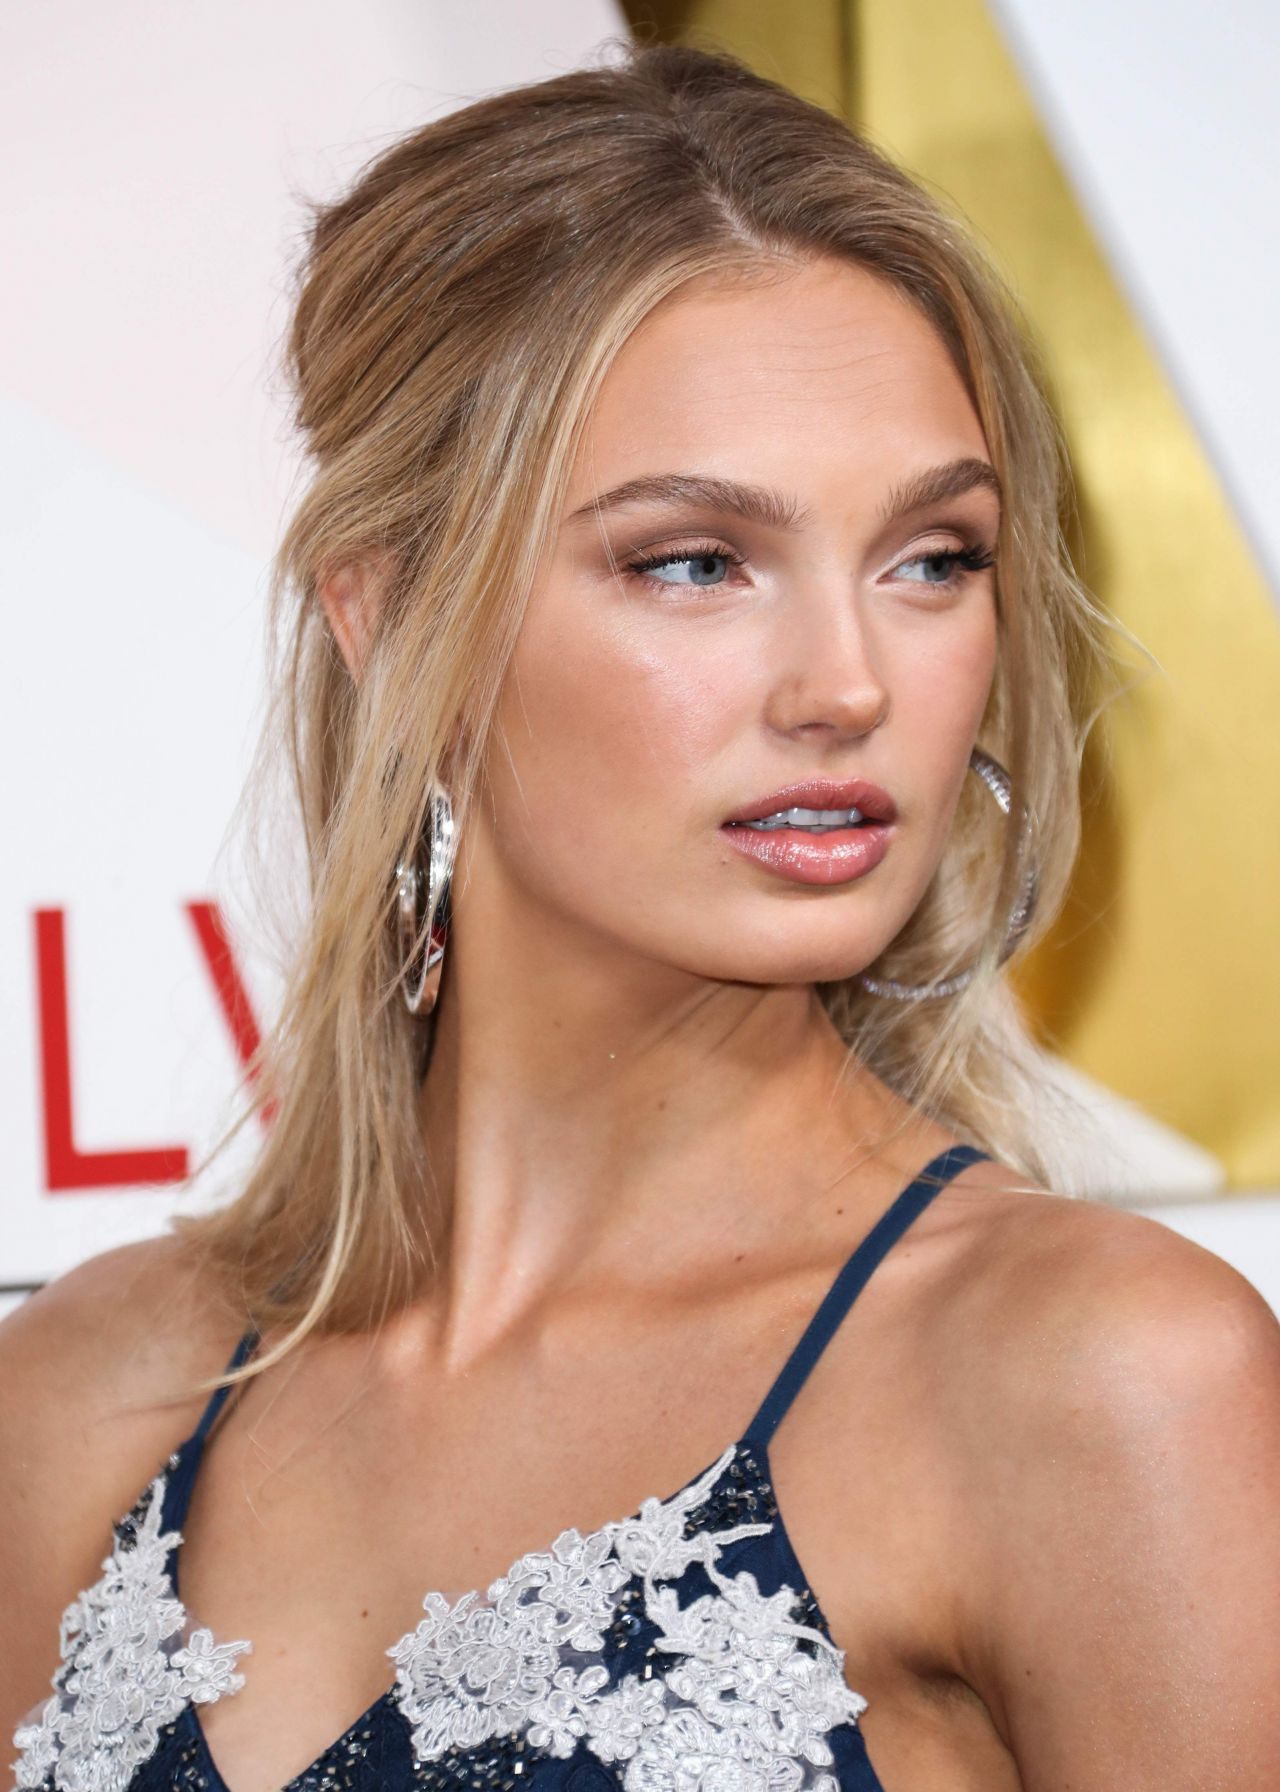 Romee Strijd Revolveawards 2017 In Hollywood